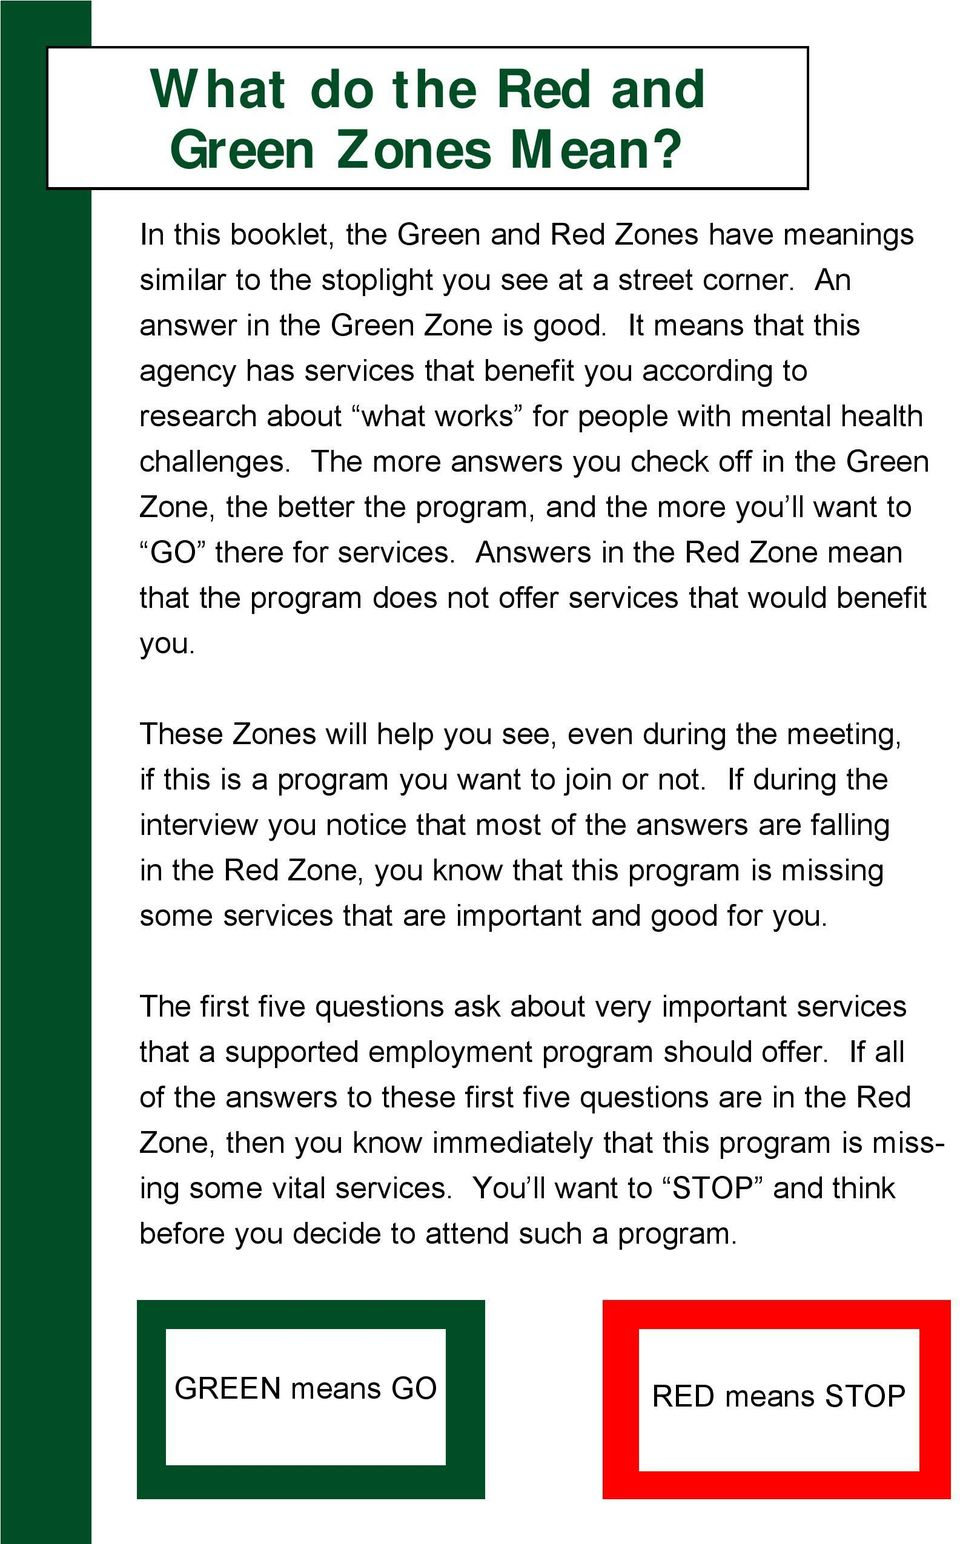 The more answers you check off in the Green Zone, the better the program, and the more you ll want to GO there for services.